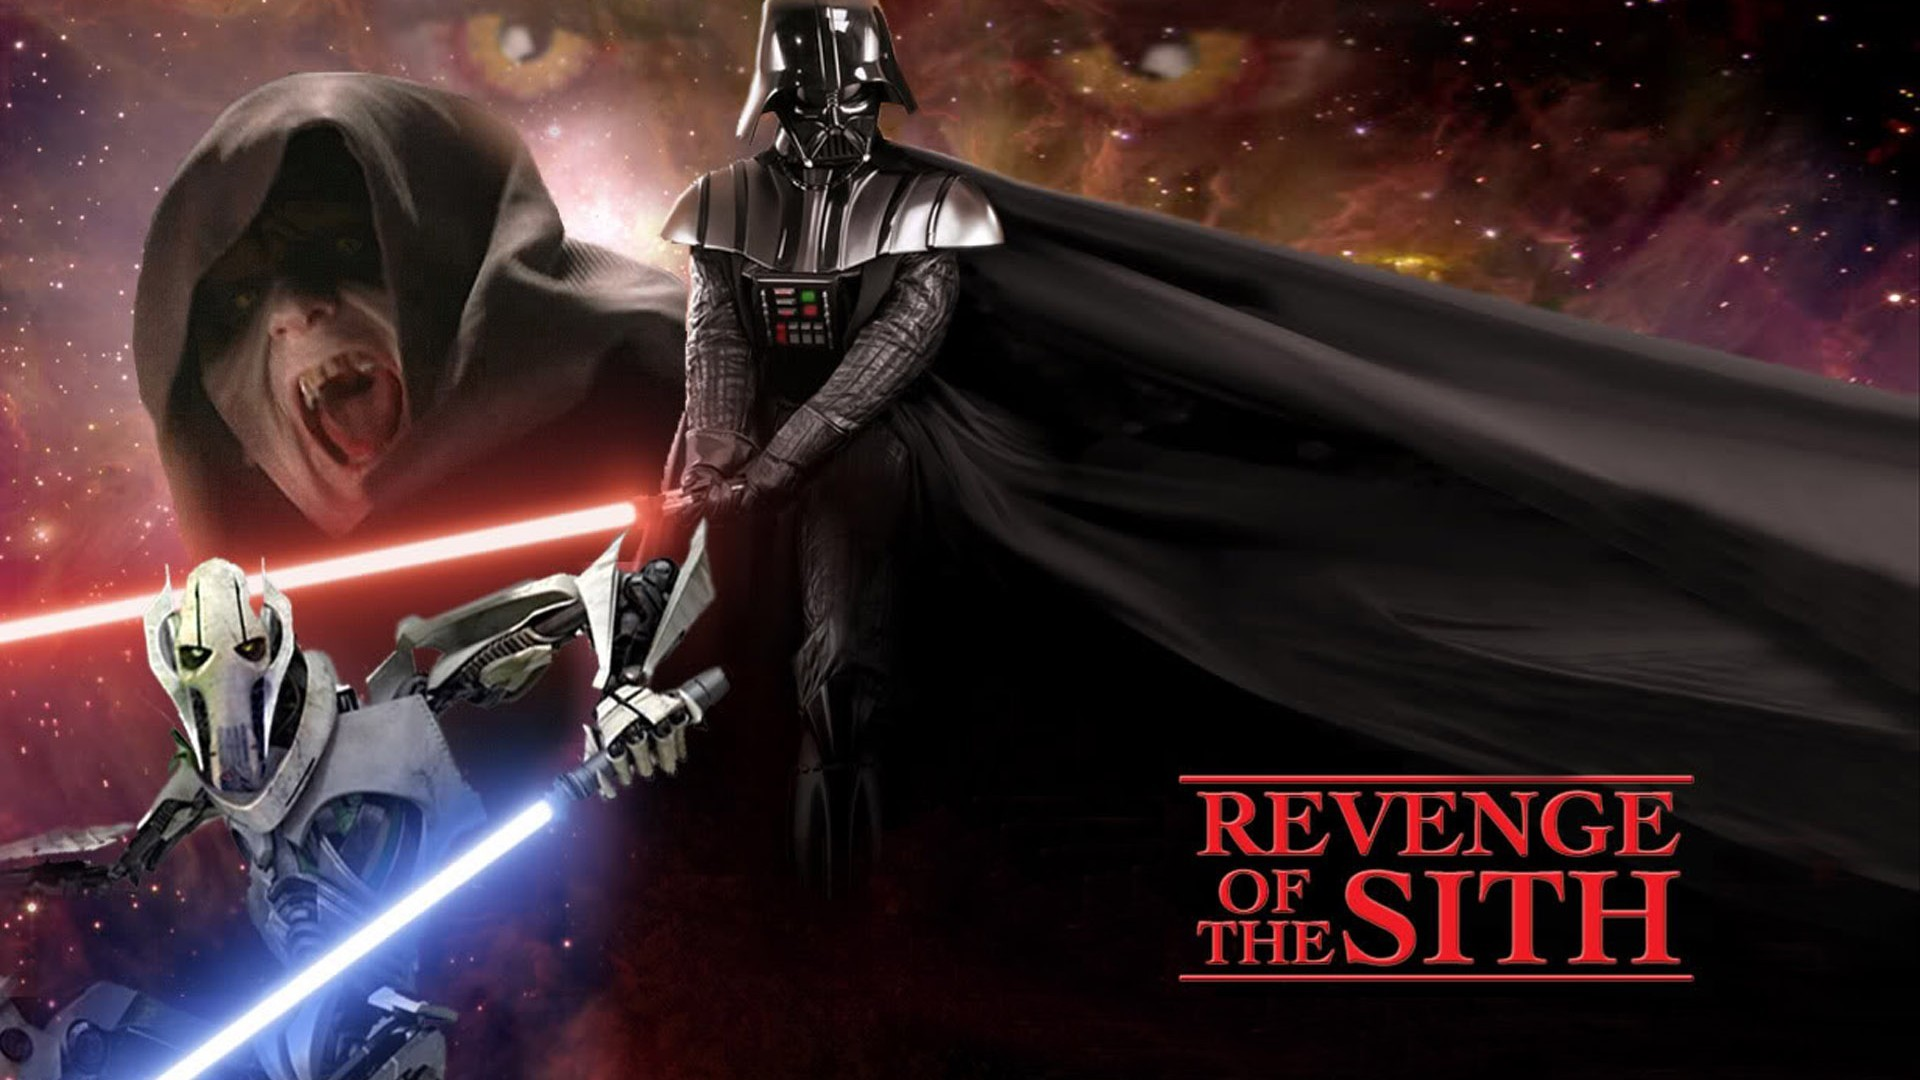 Res: 1920x1080, Star Wars Episode III: Revenge of the Sith Wallpapers 21 - 1920 X 1080